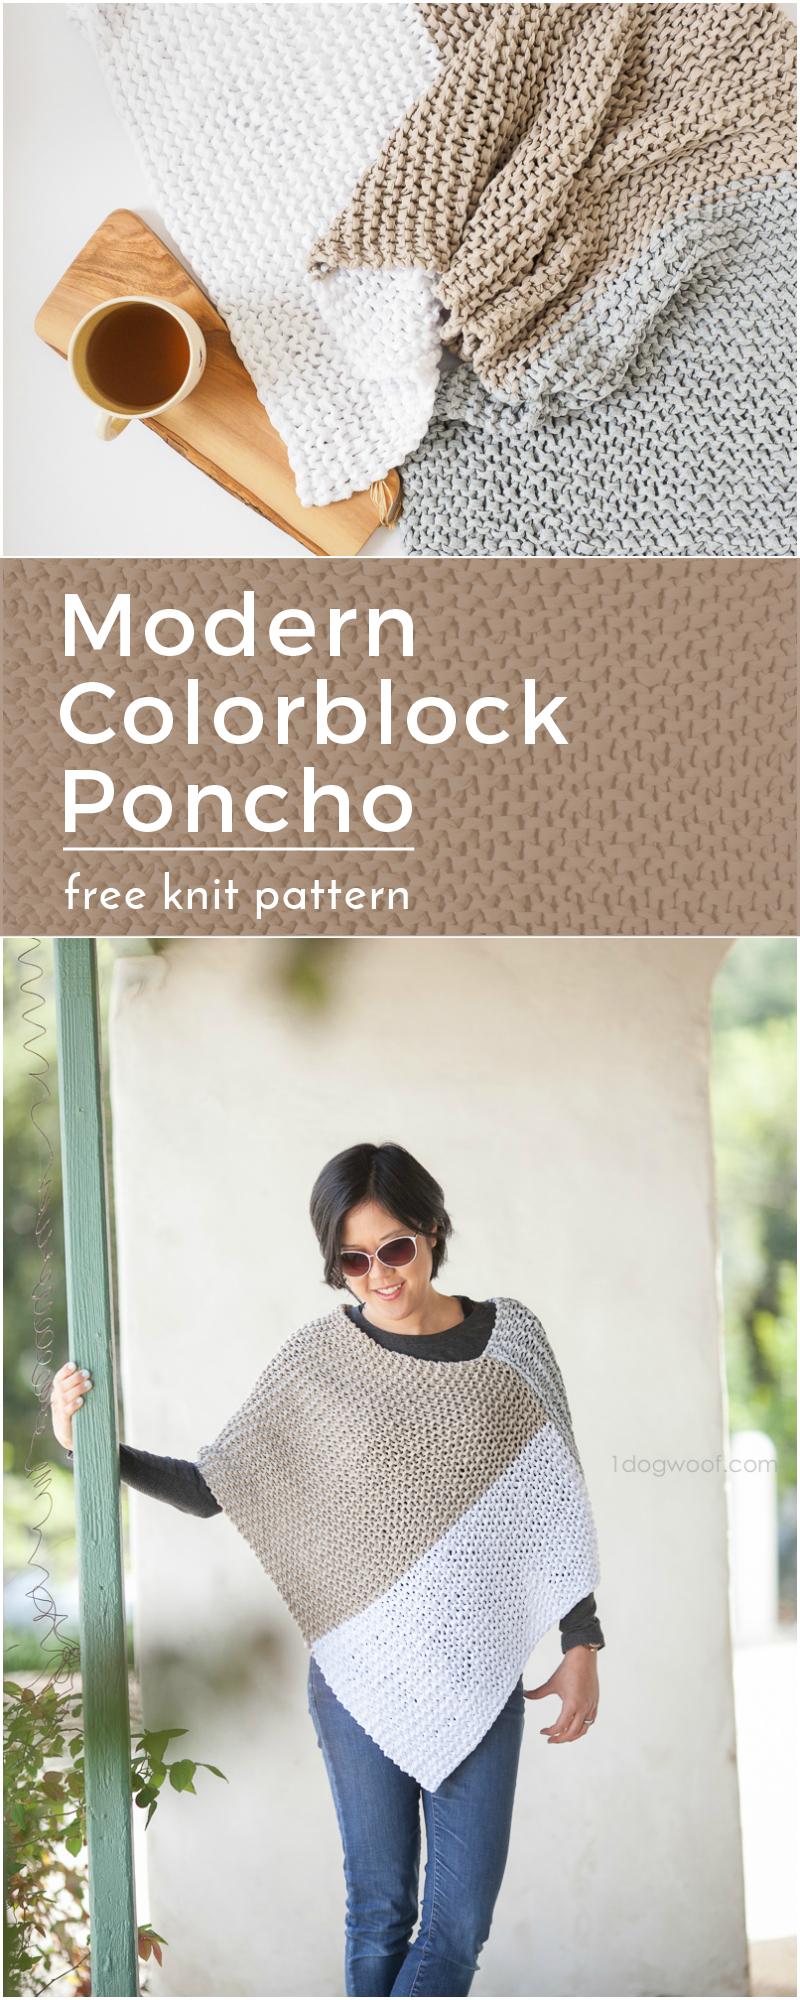 Easy Knit Catalunya Colorblock Poncho: free knitting pattern from 1dogwoof.com. A modern colorblock wrap or poncho using a simple knit garter stitch!